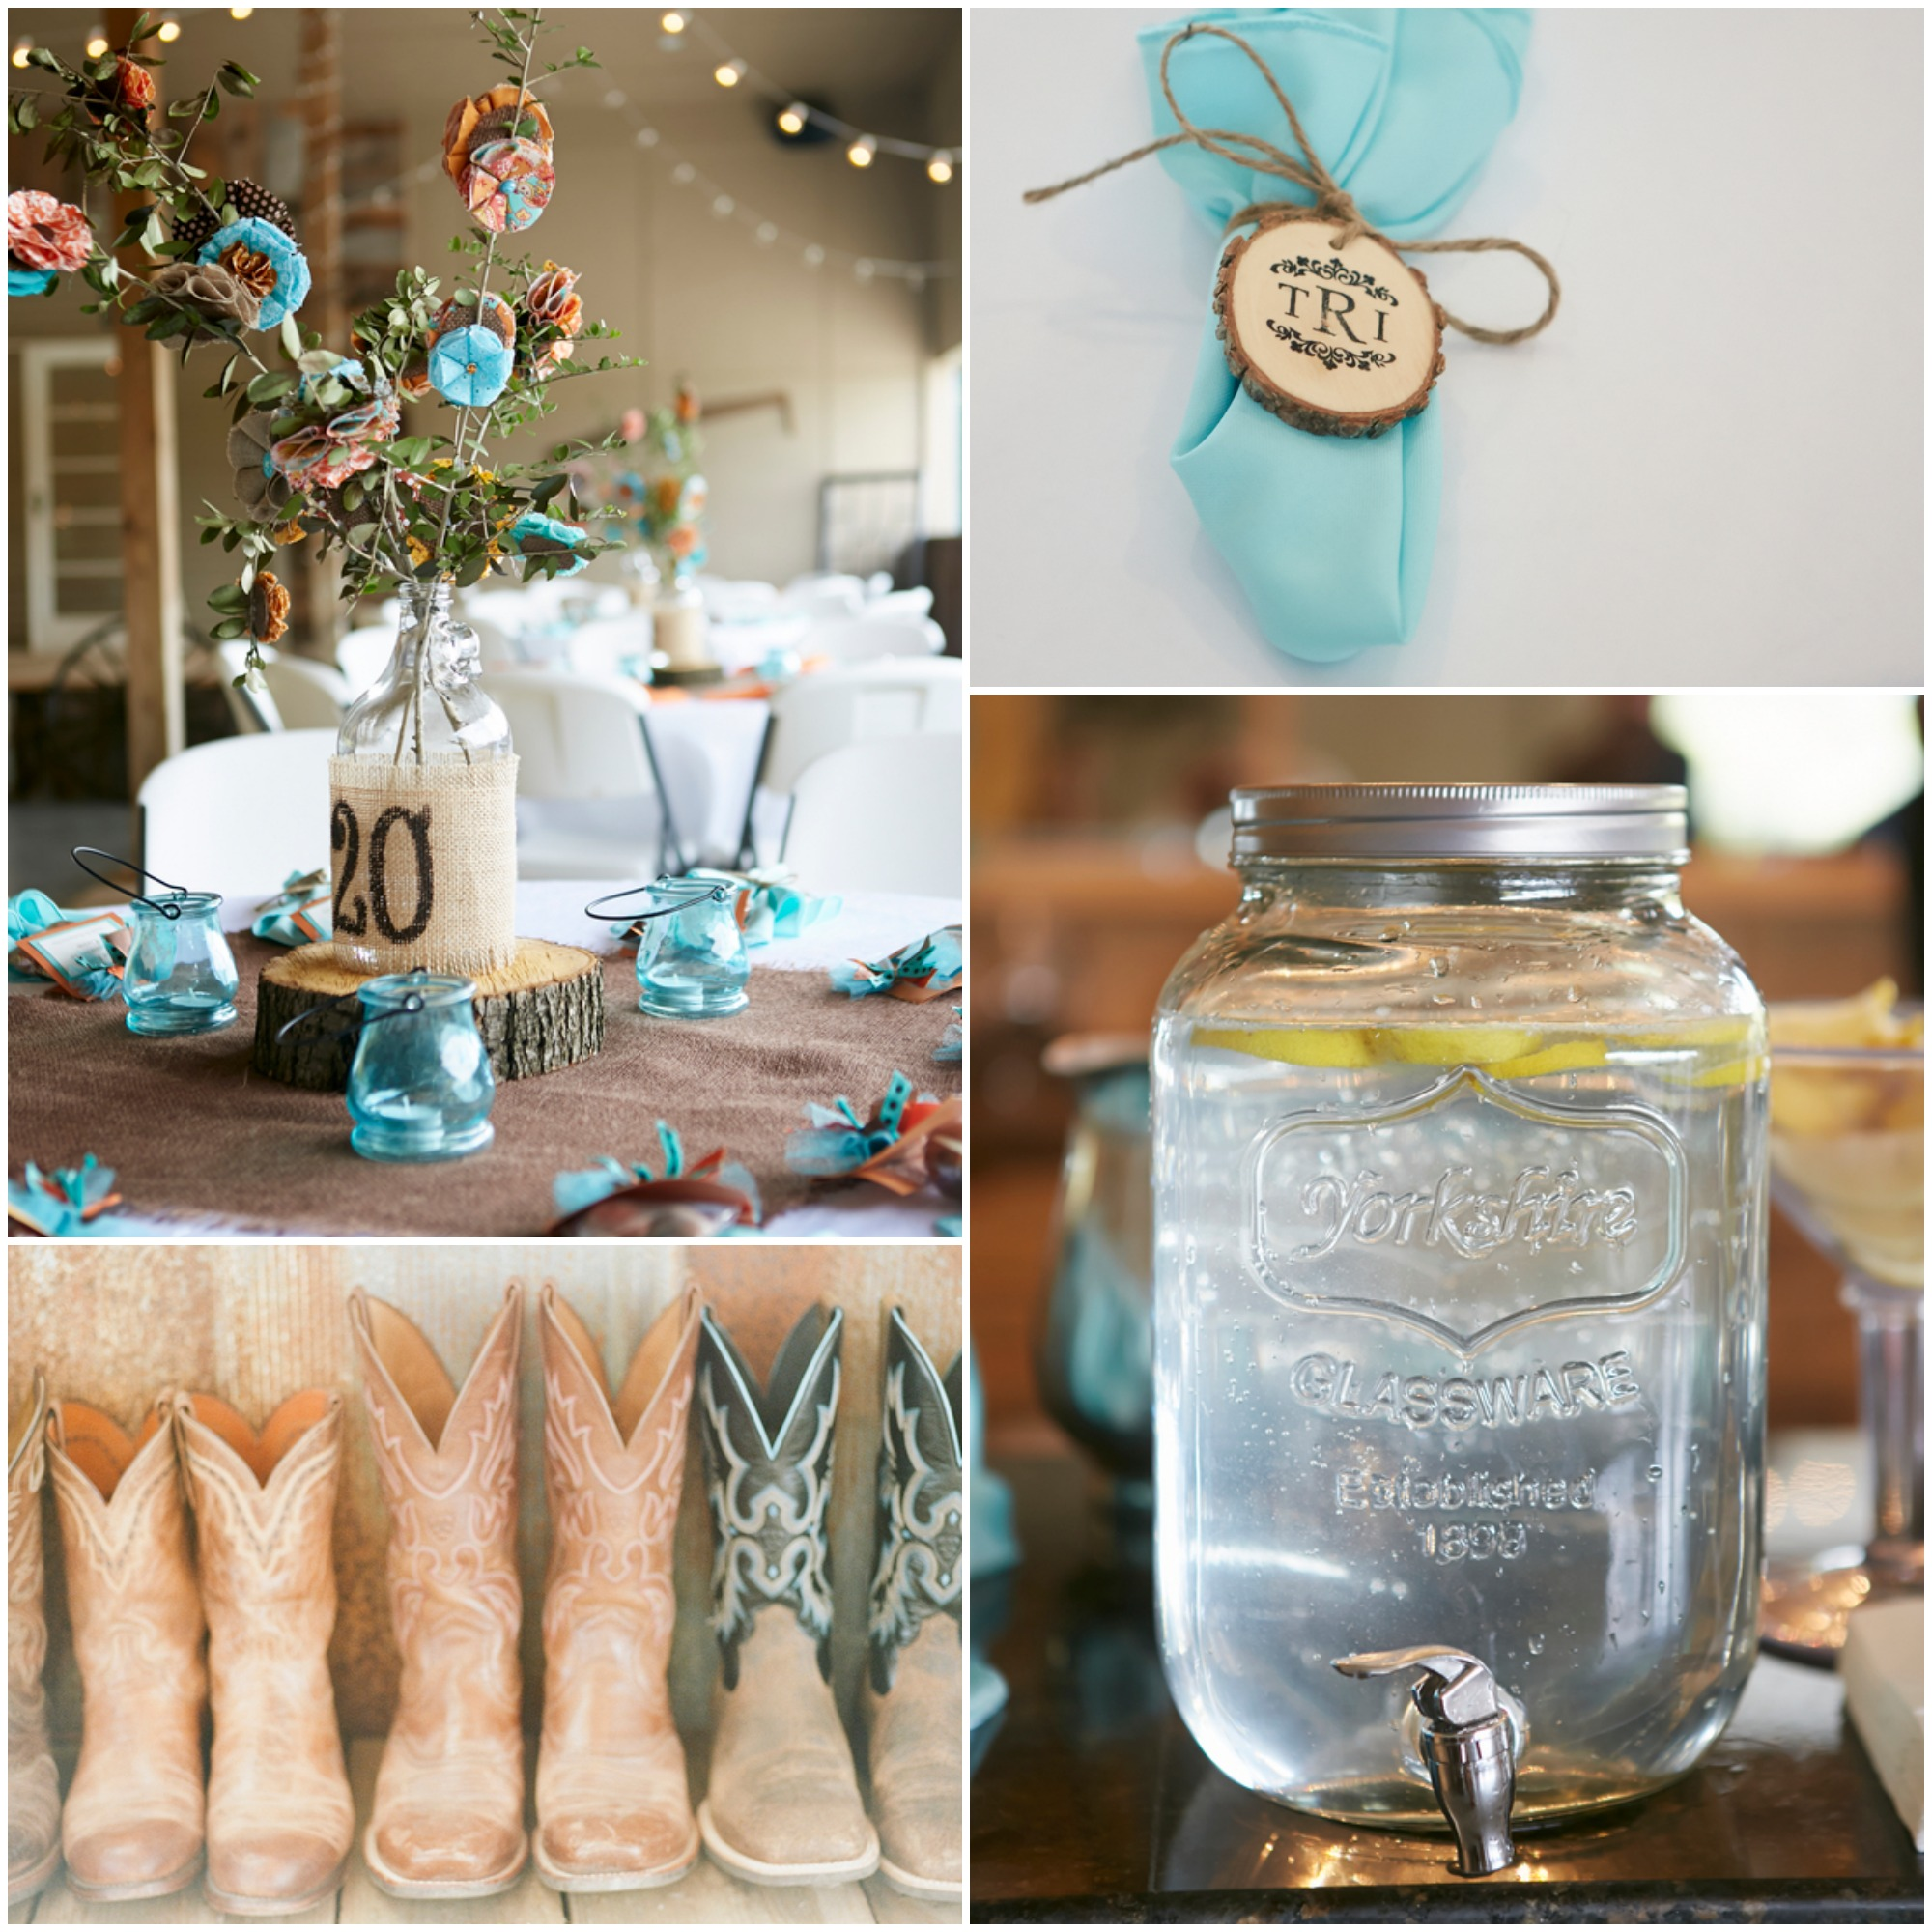 Country Wedding Centerpiece Decorations : Wedding decorations rustic country inspiration